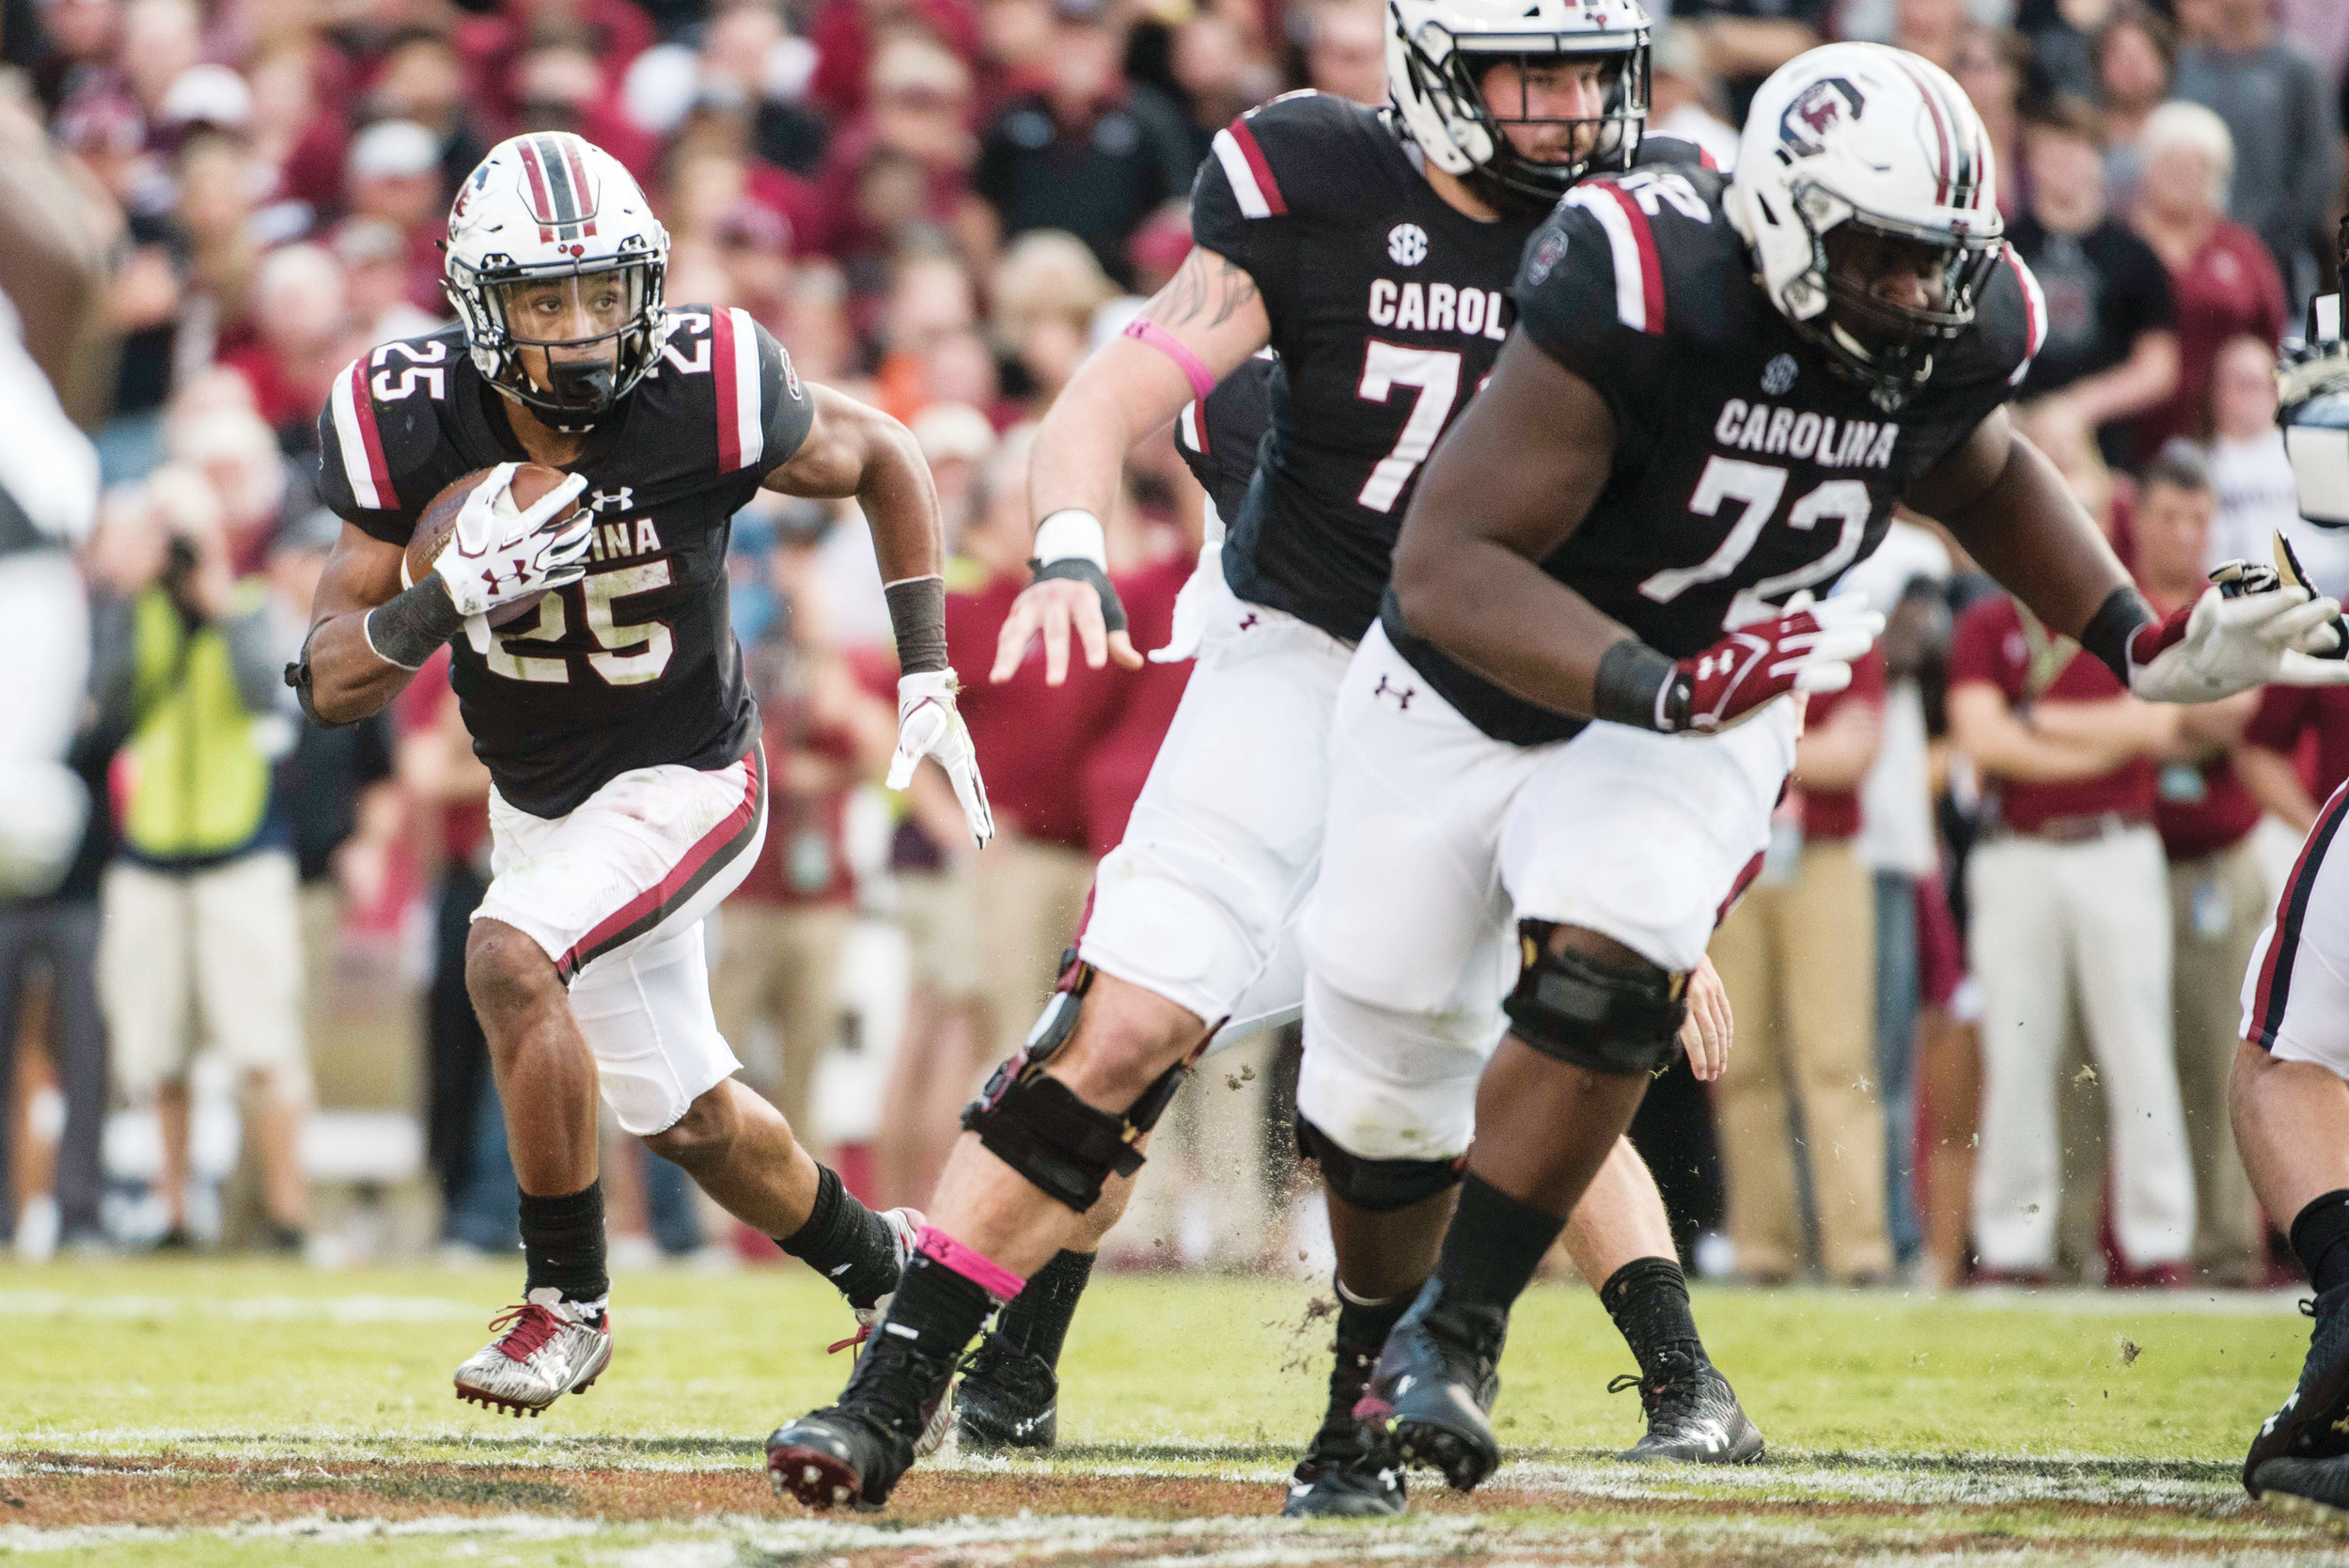 South Carolina running back A.J. Turner (25) carries the ball behind a block from lineman Donell Stanley (72) during the first half of the Gamecocks' 34-27 victory over Vanderbilt on Saturday in Columbia.